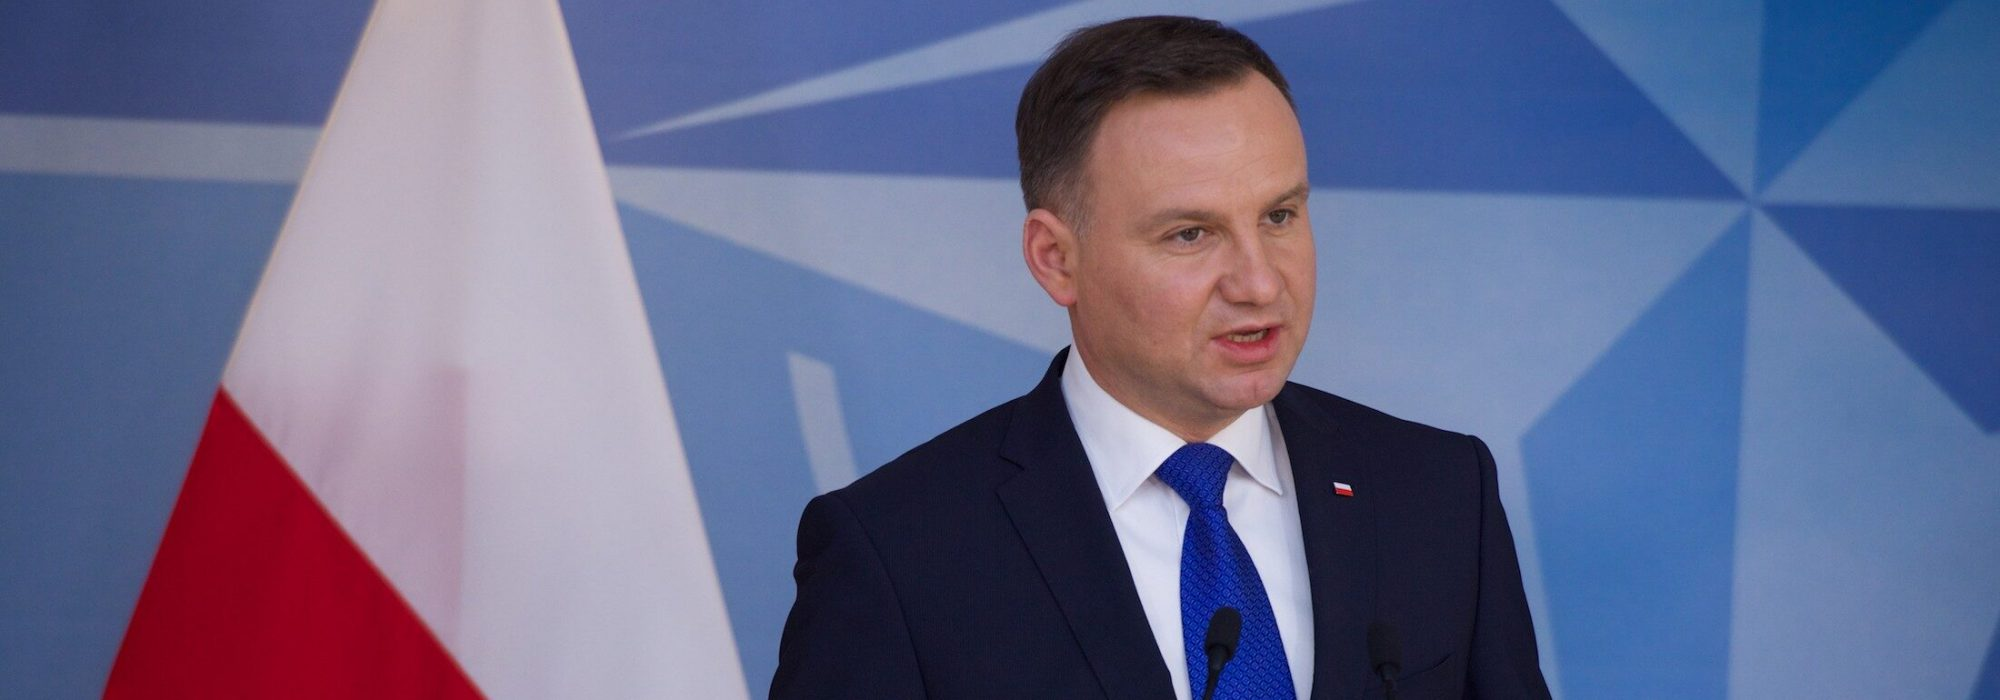 The President of Poland, Andrzej Duda during a joint press point with NATO Secretary General Jens Stoltenberg